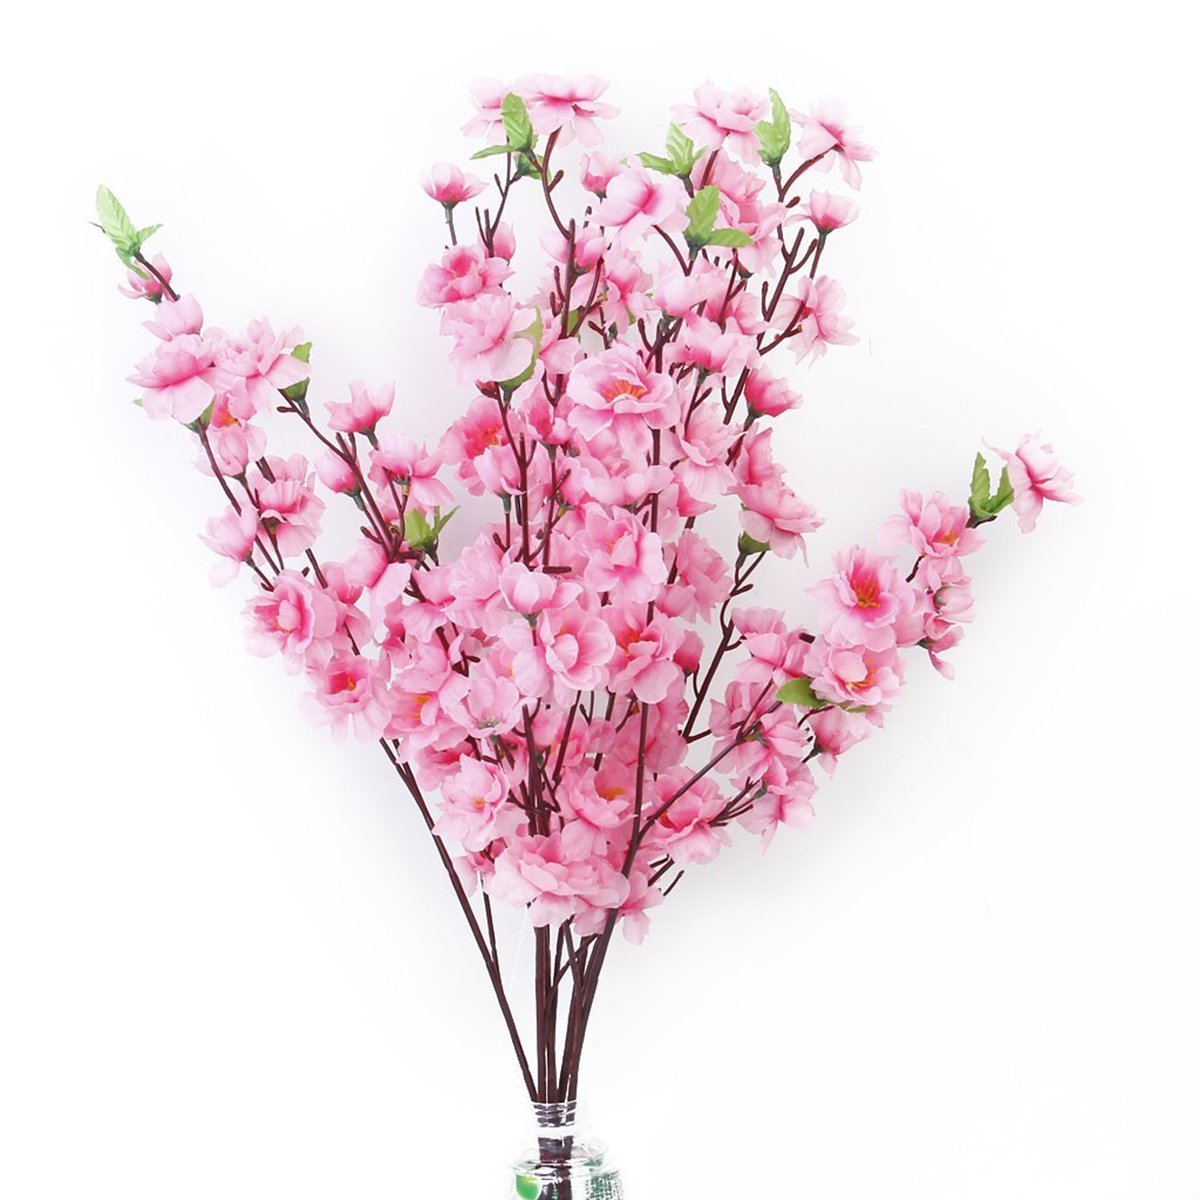 Tinksky 6pcs Peach Blossom Simulation Flowers Artificial Flowers Silk Flower Decorative Flowers Wreaths (Pink)